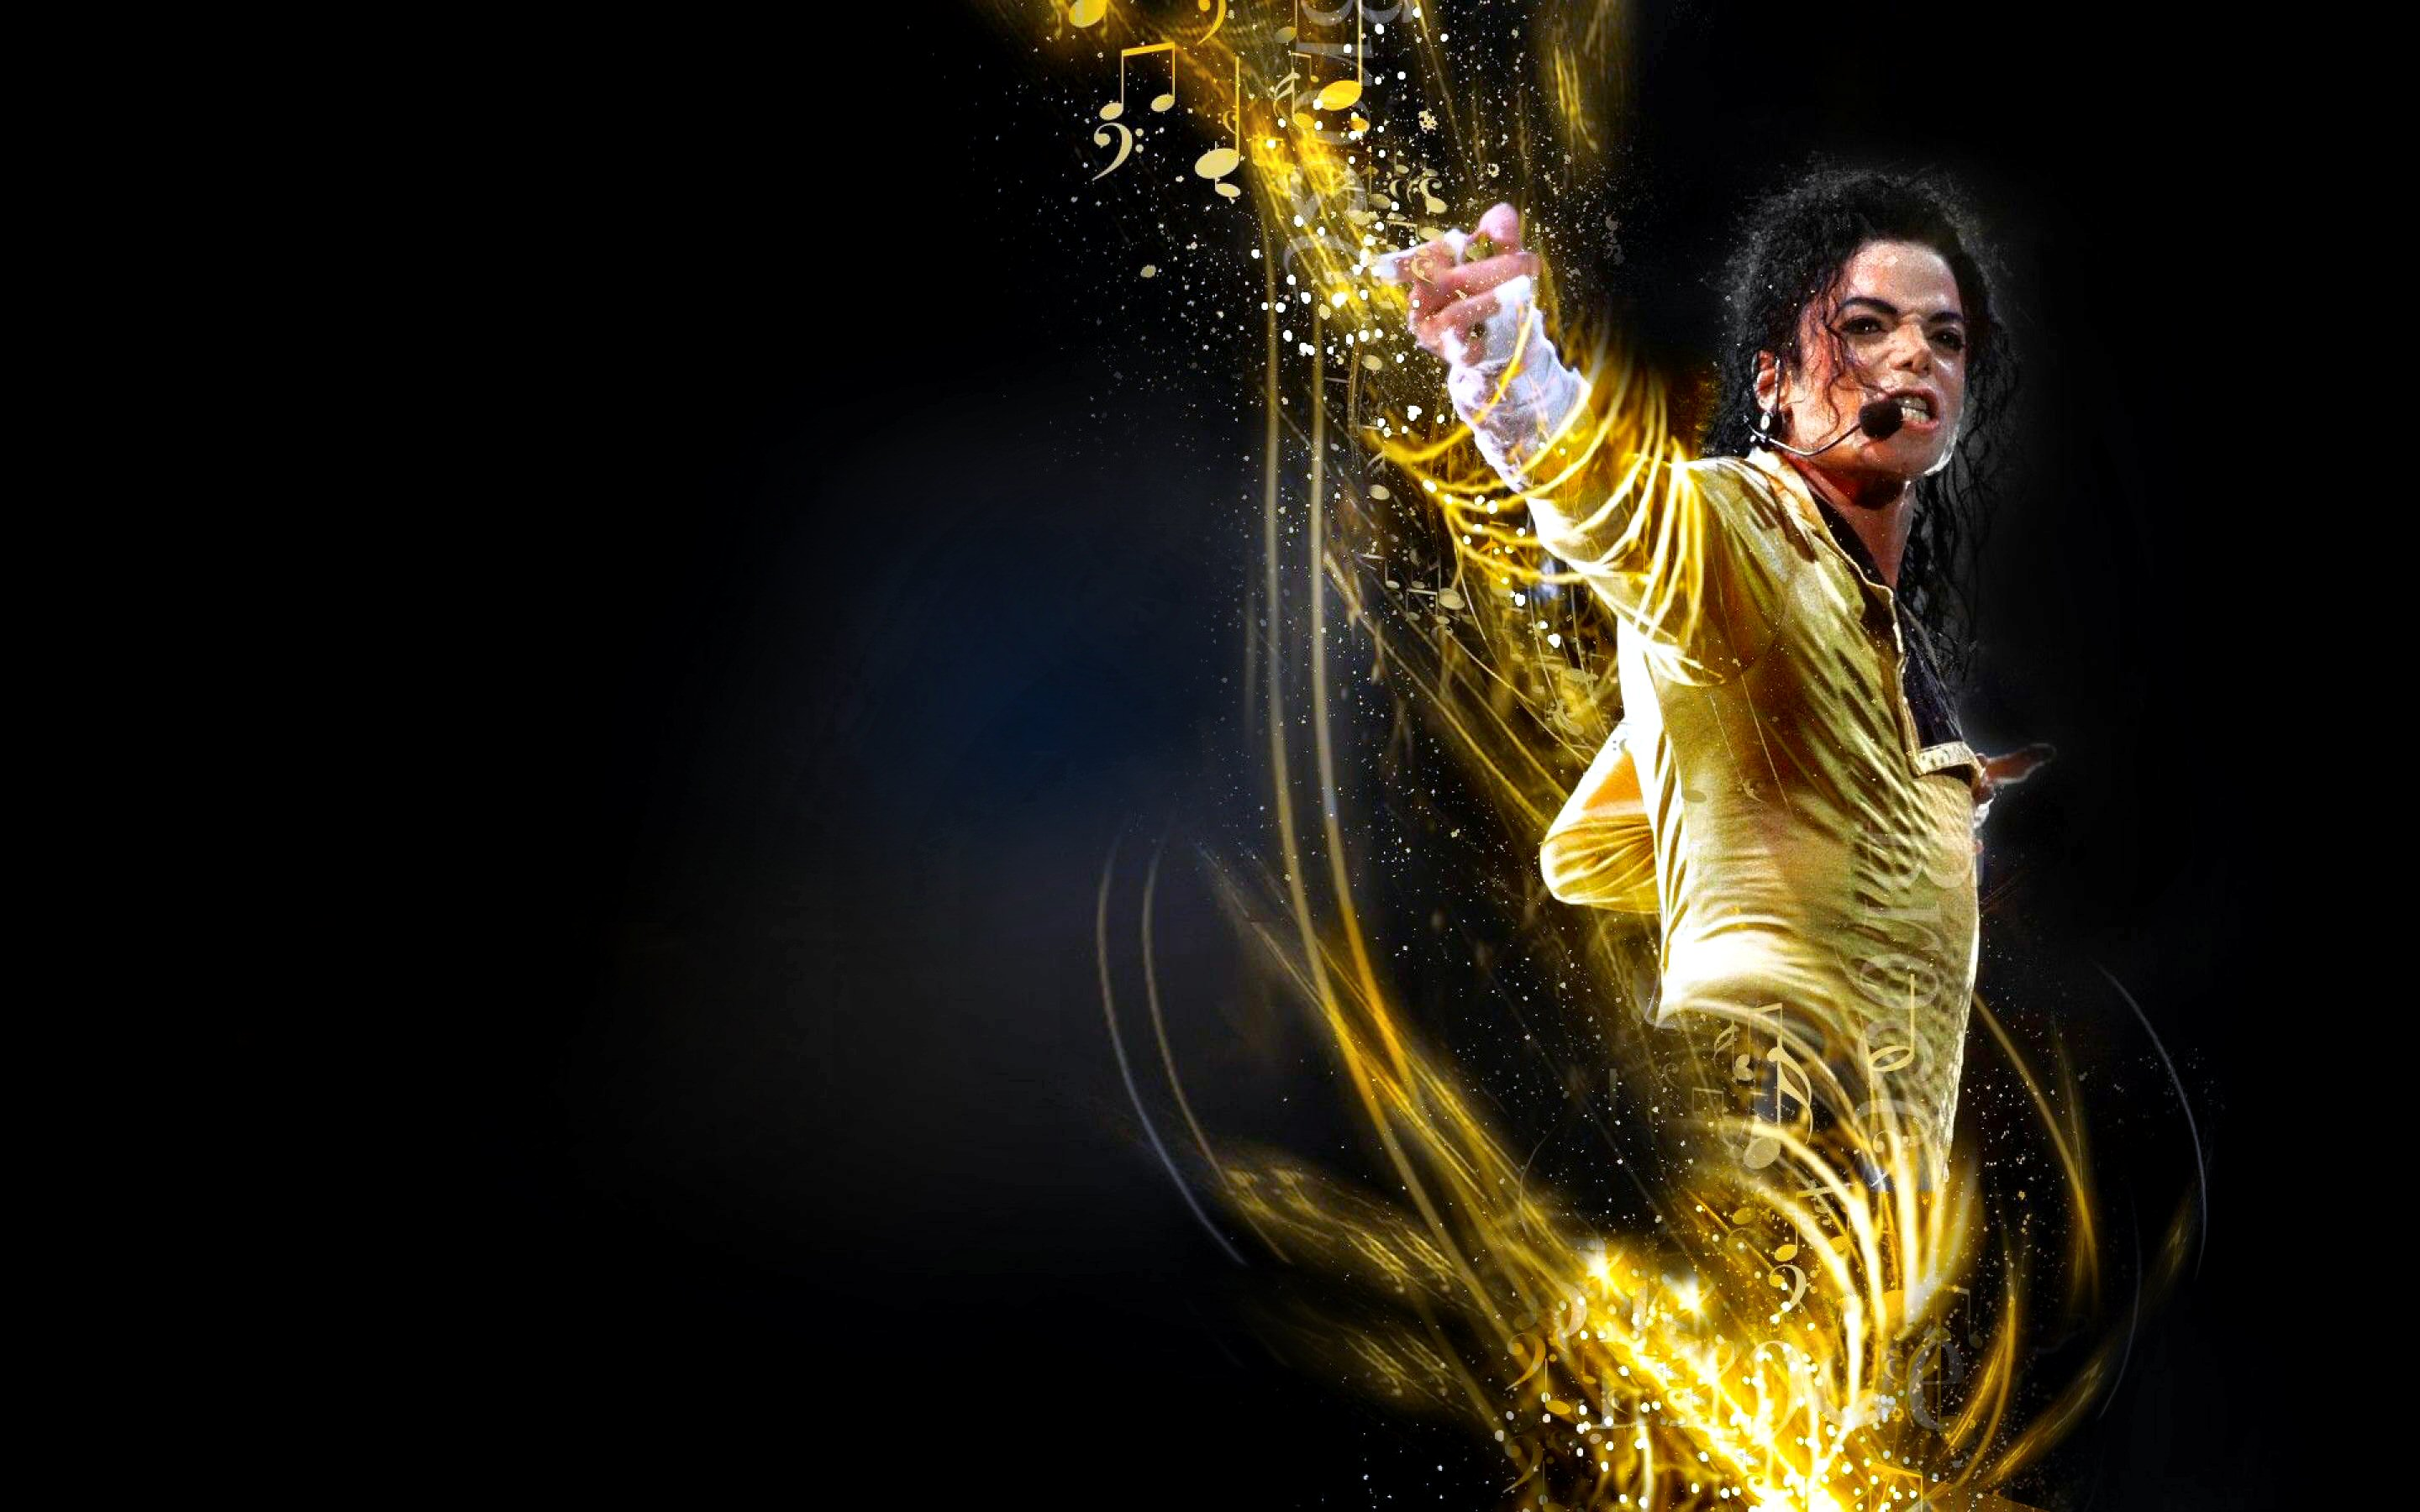 Michael Jackson HD Wallpapers • PoPoPics.com